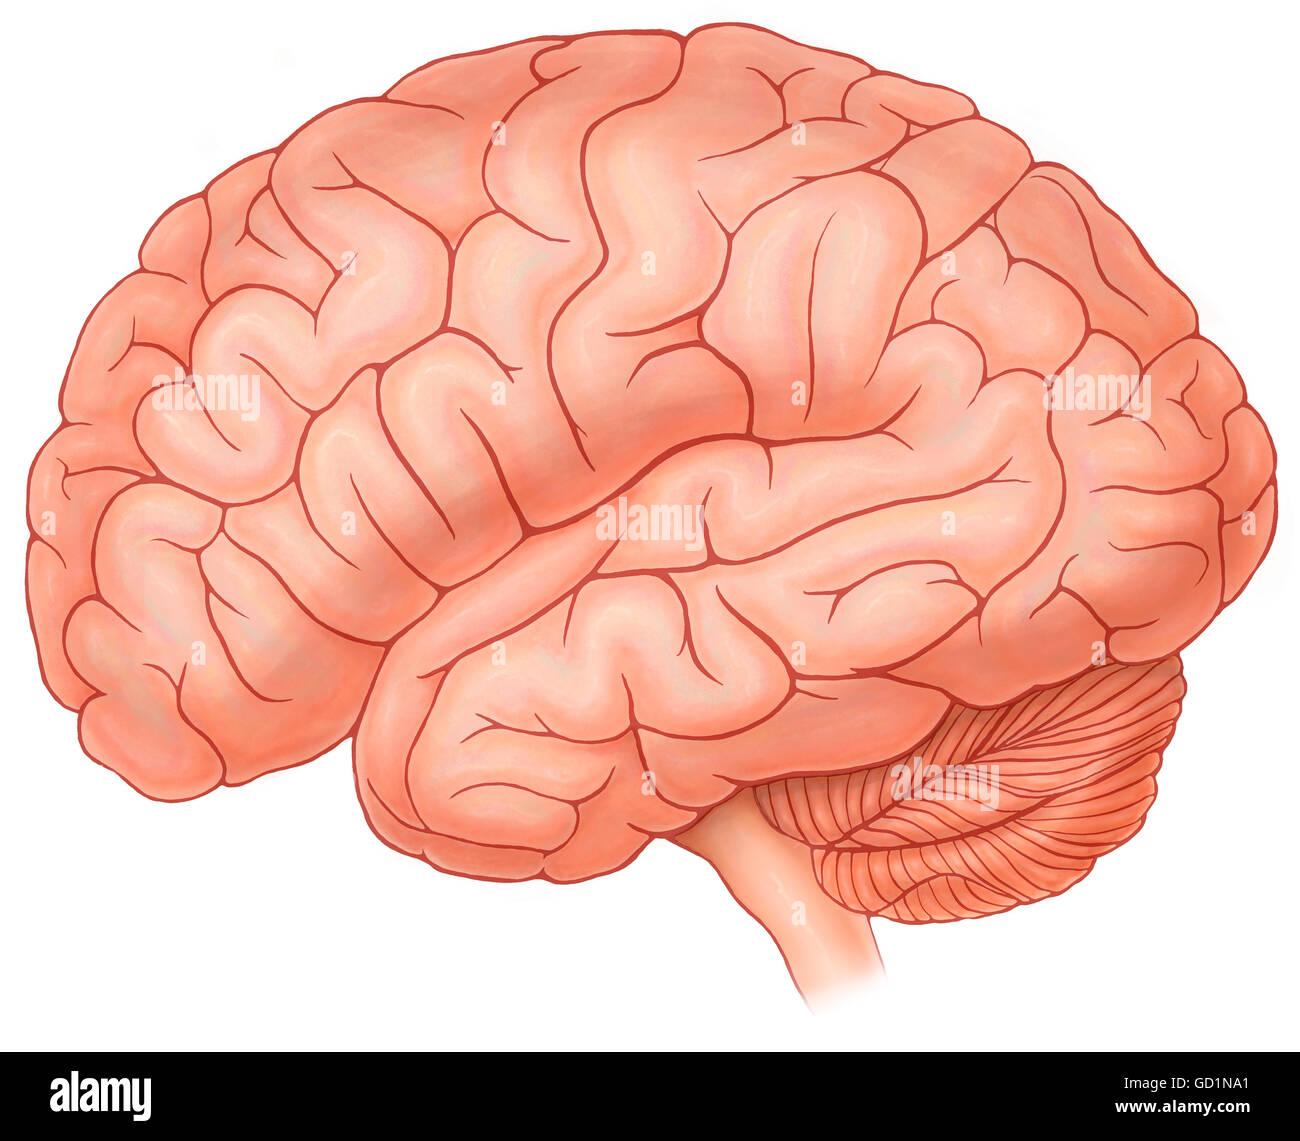 Lateral view of a normal brain Stock Photo: 111291433 - Alamy